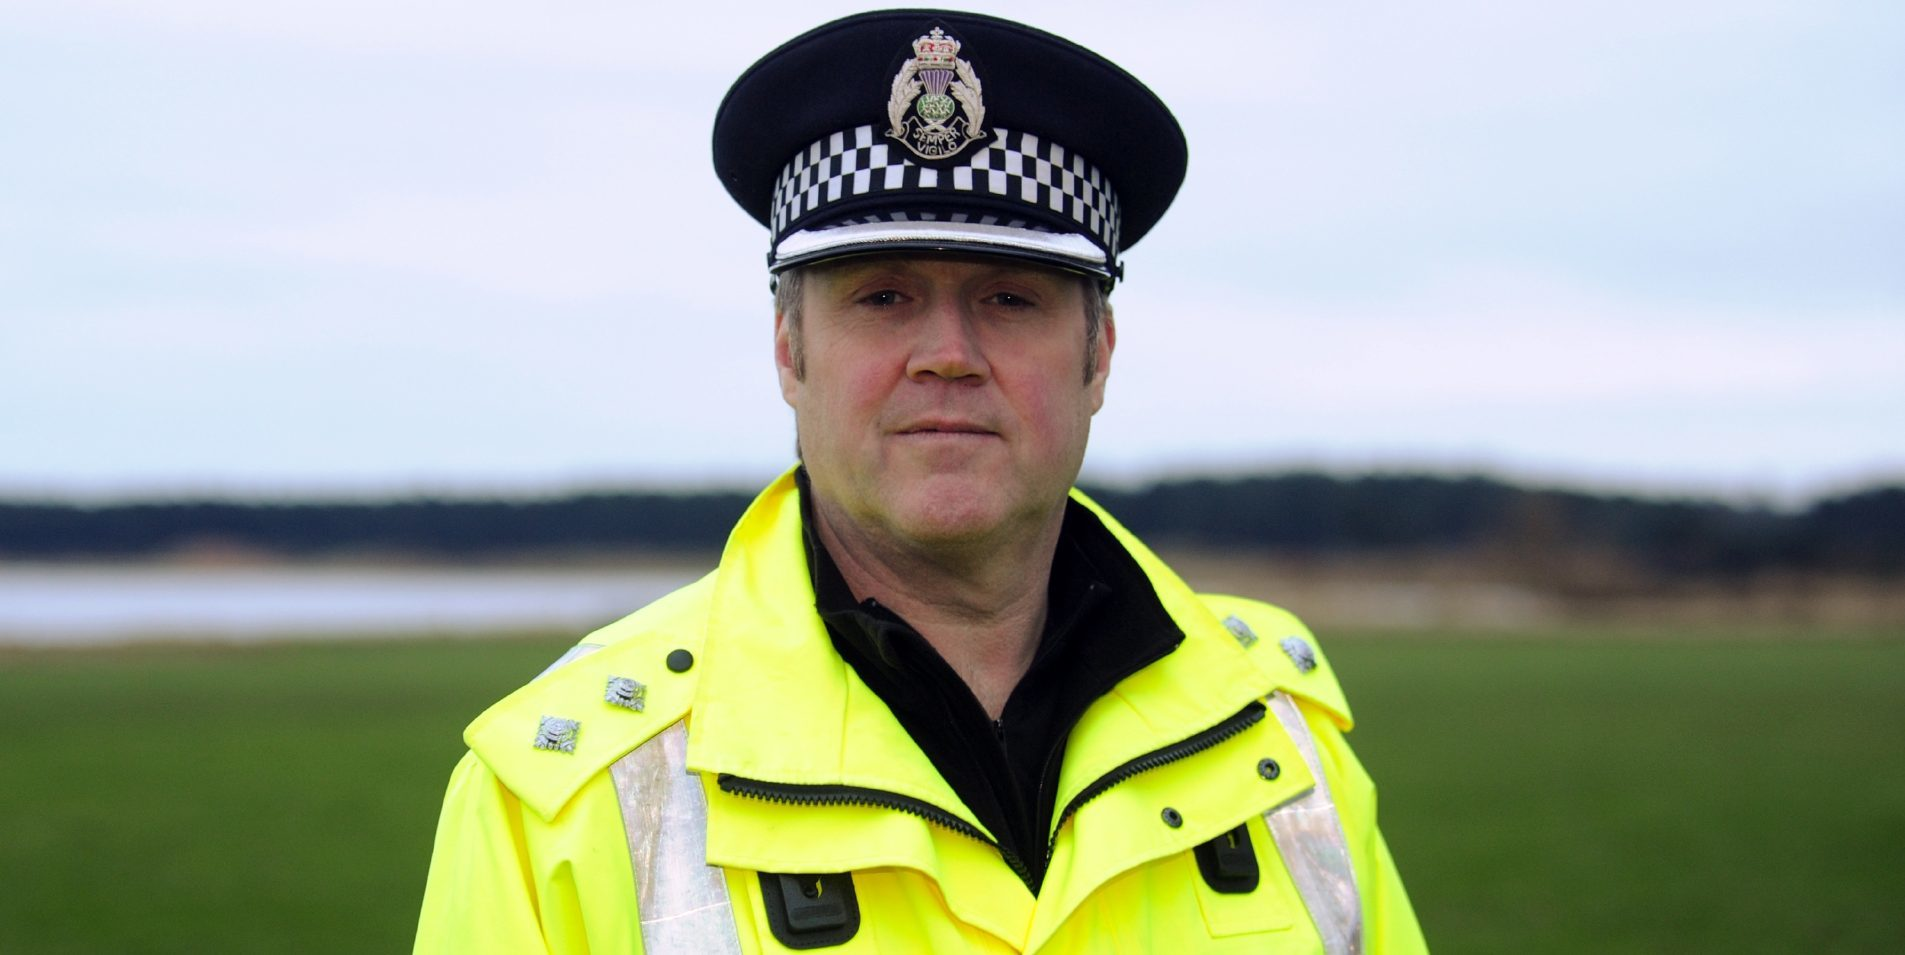 Levenmouth Inspector Tom Brown.